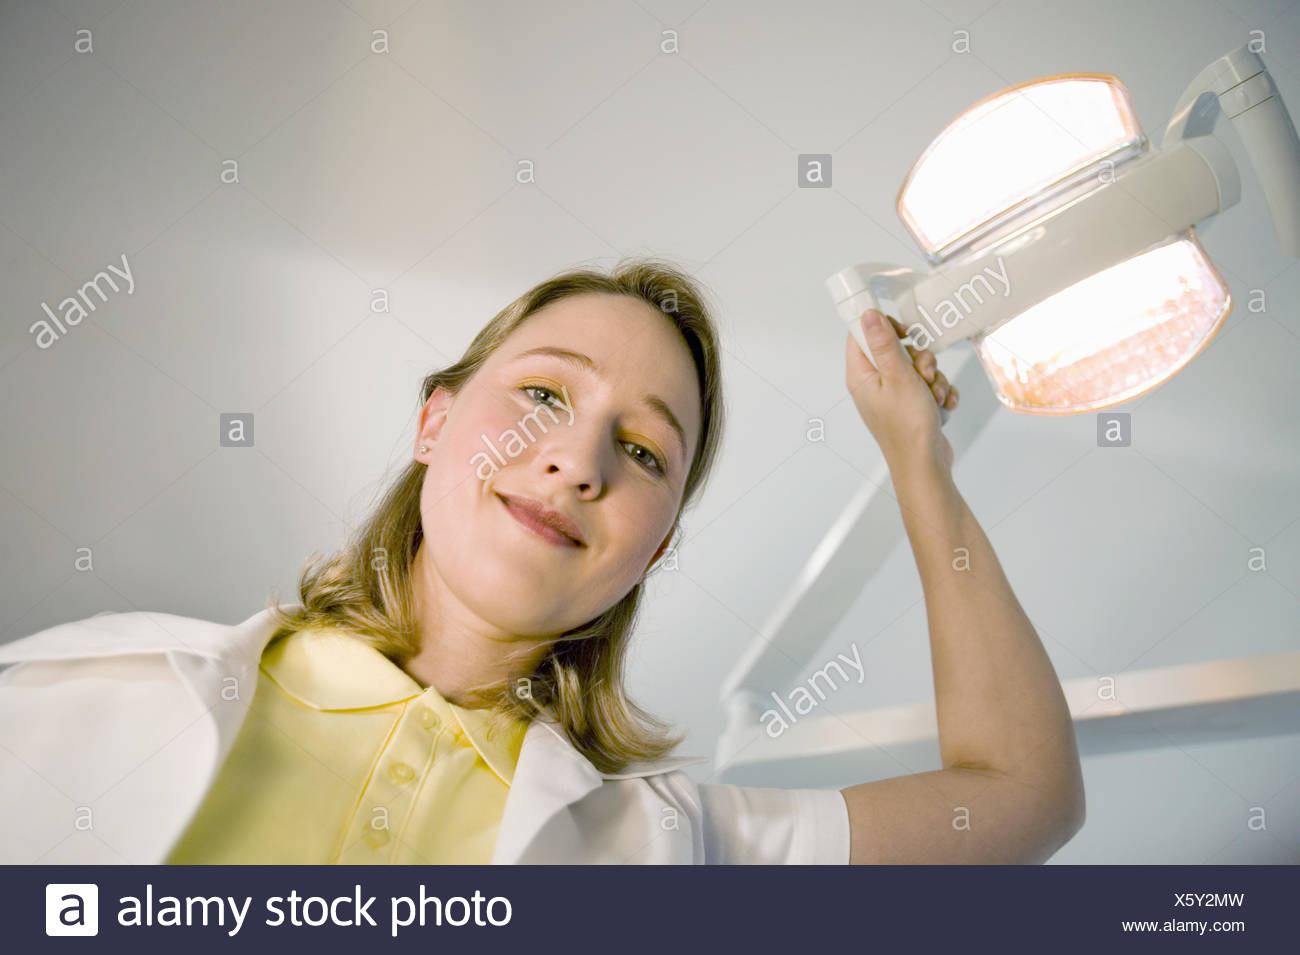 Female dental assistant smiling and adjusting dental light - Stock Image